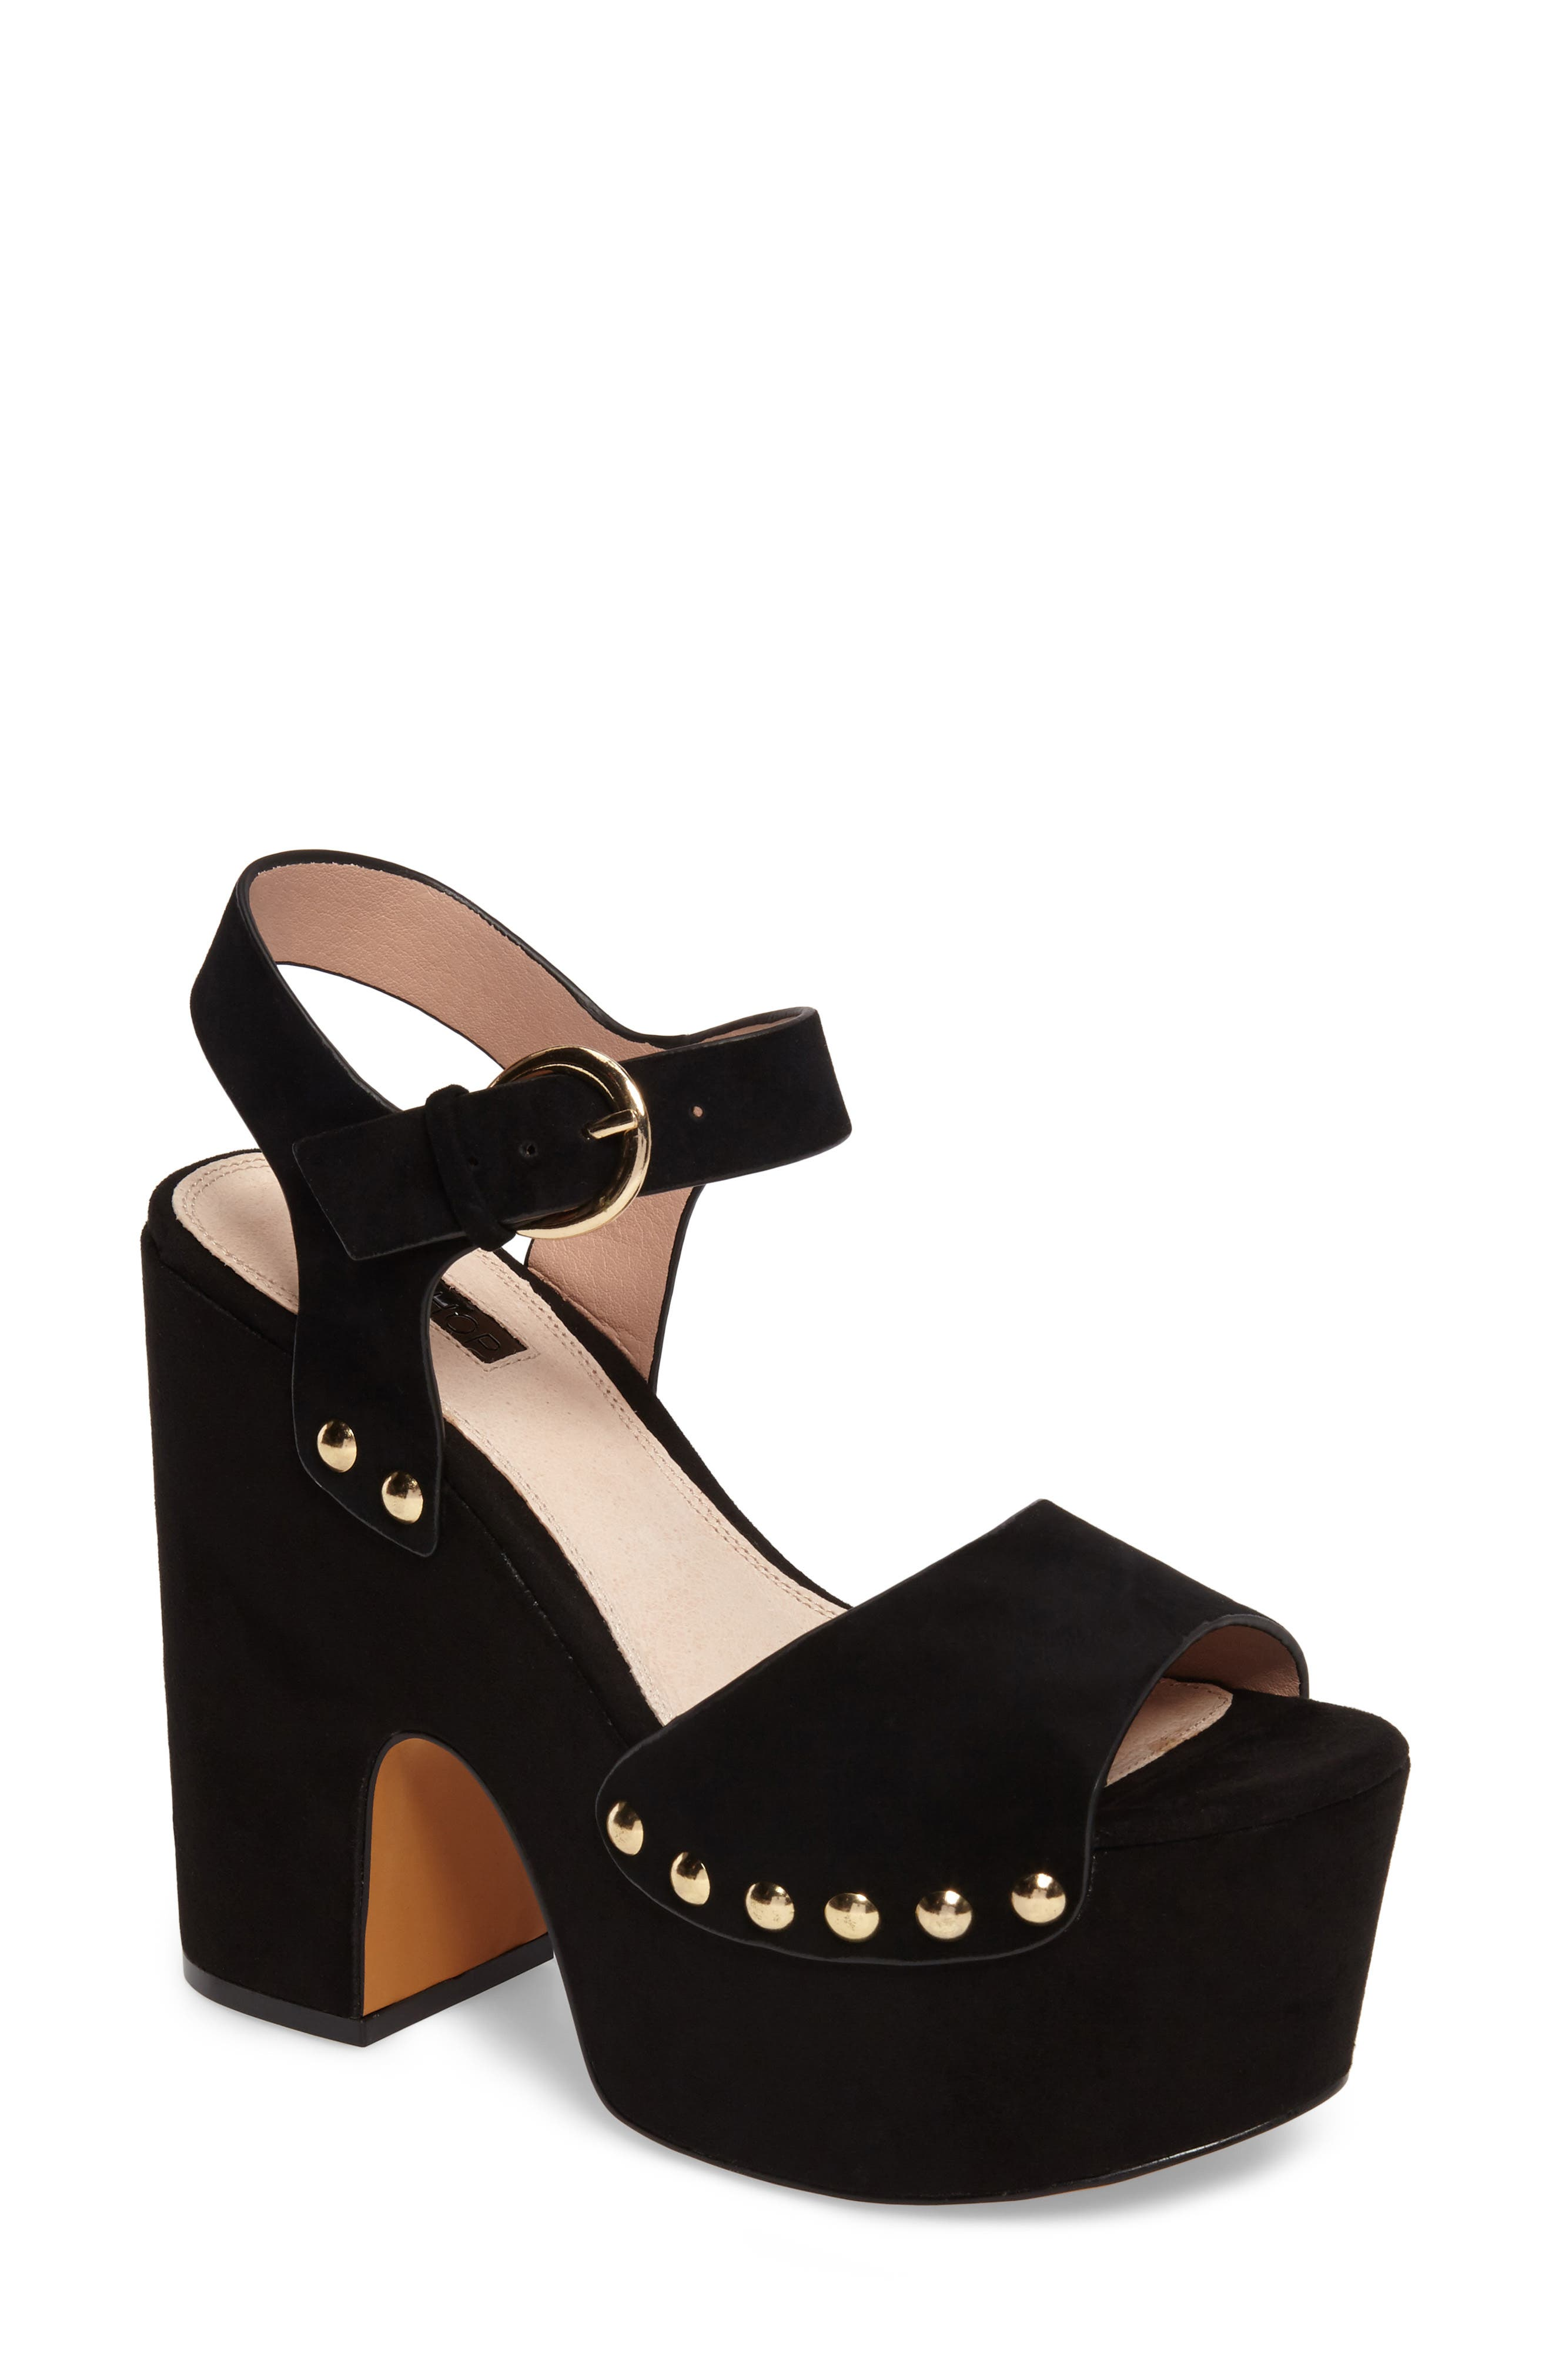 Alternate Image 1 Selected - Topshop Lourdes Embroidered Platform Sandal (Women)